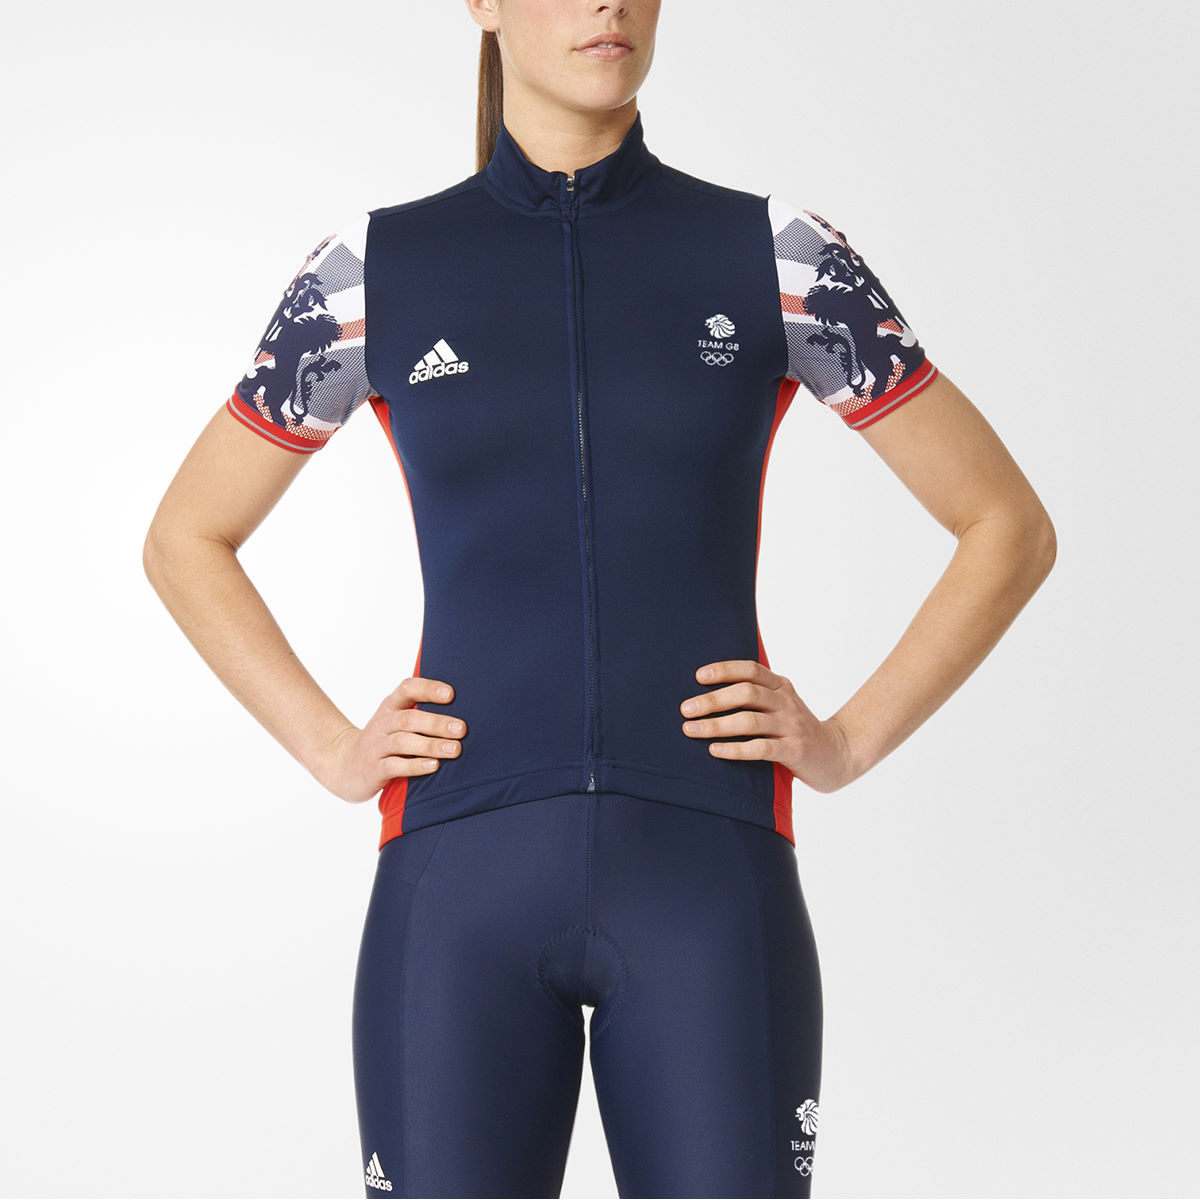 f595634f9a8 Wiggle Cycle To Work | adidas Cycling Women's GB Replica Training ...